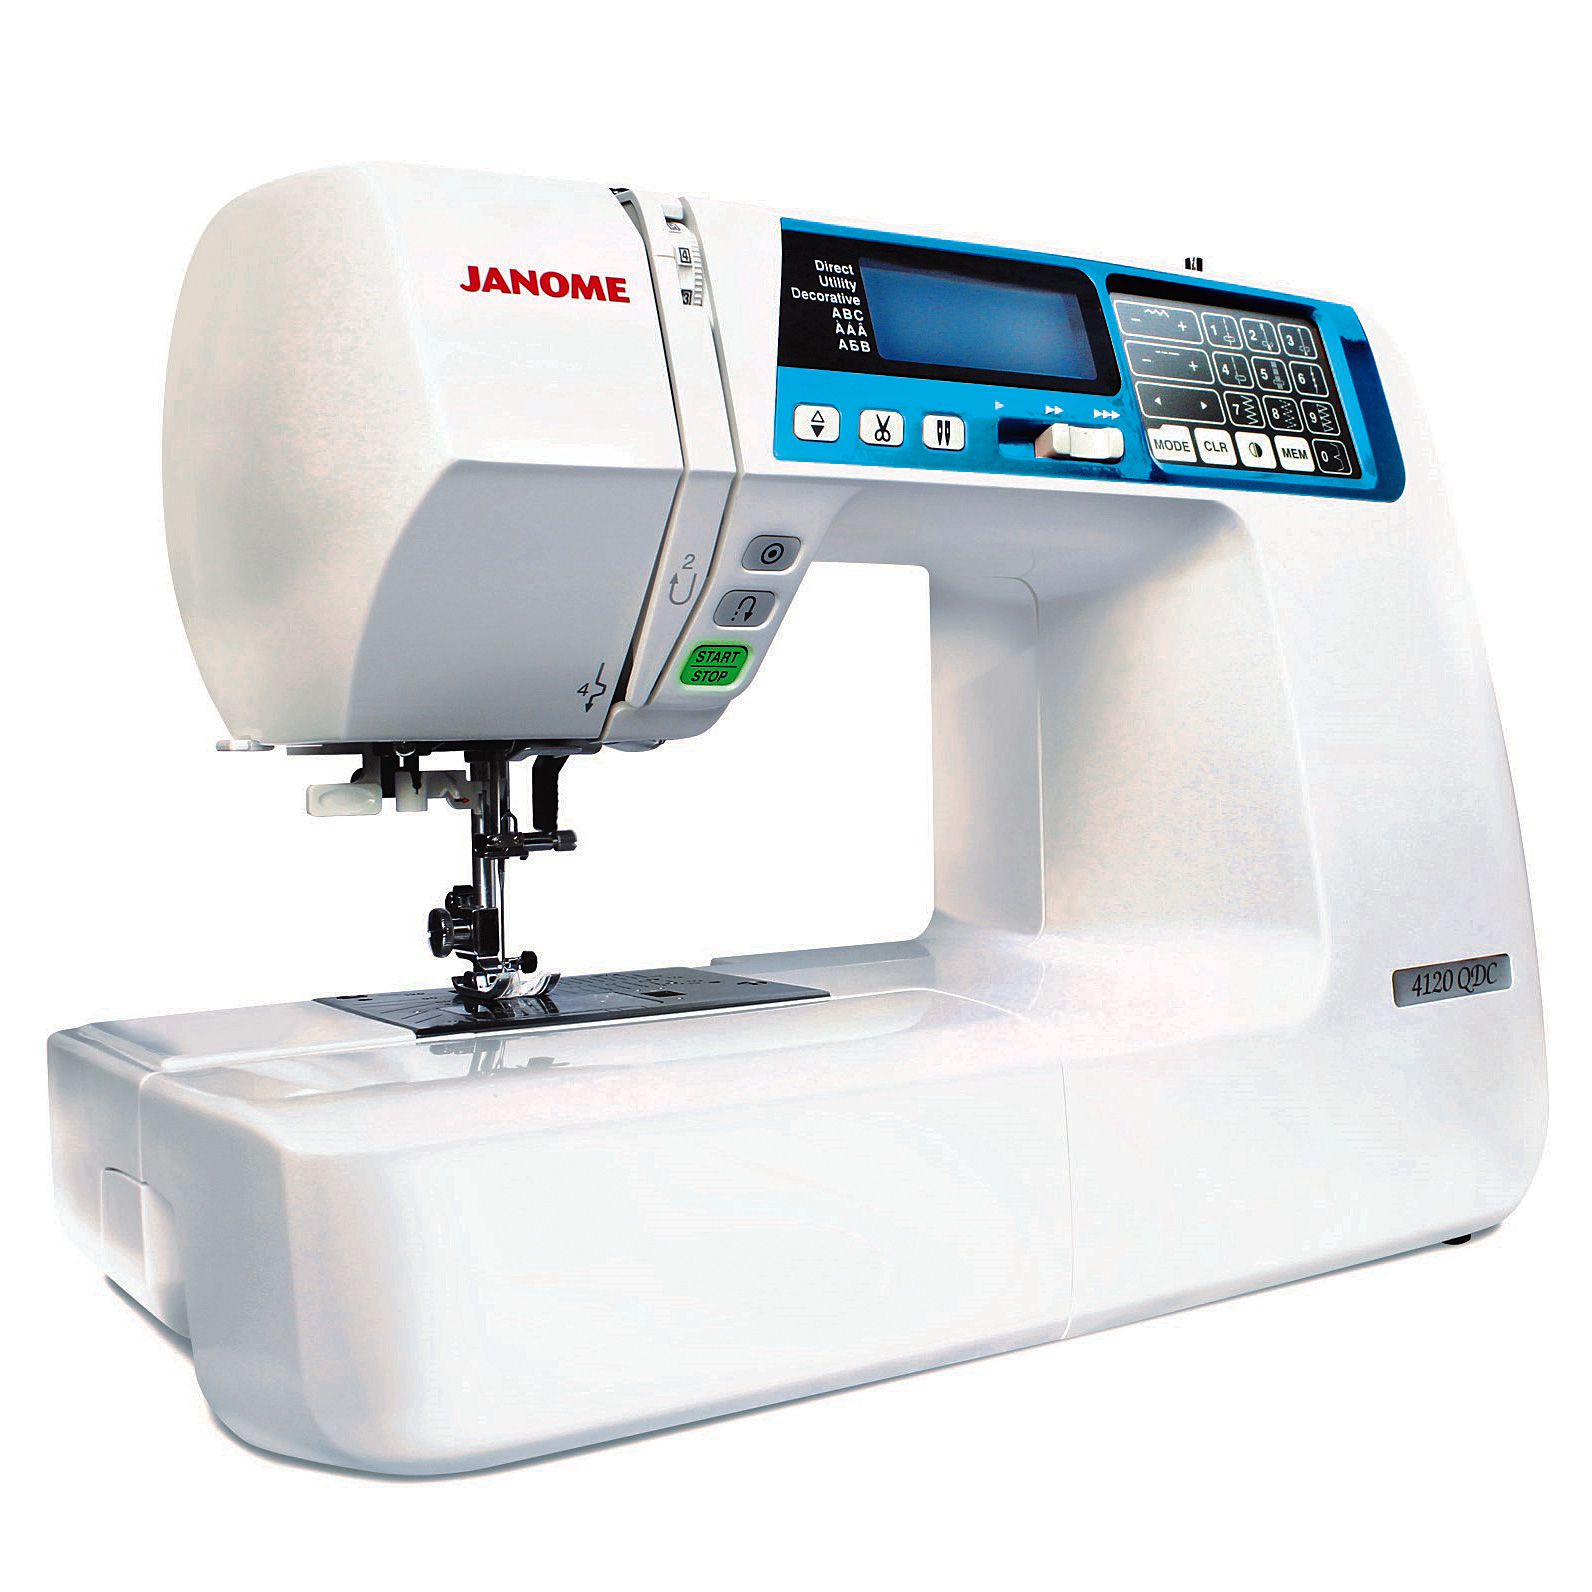 Janome 4120QDC-B Quilters Decor Computerized Sewing and Quilting Machine